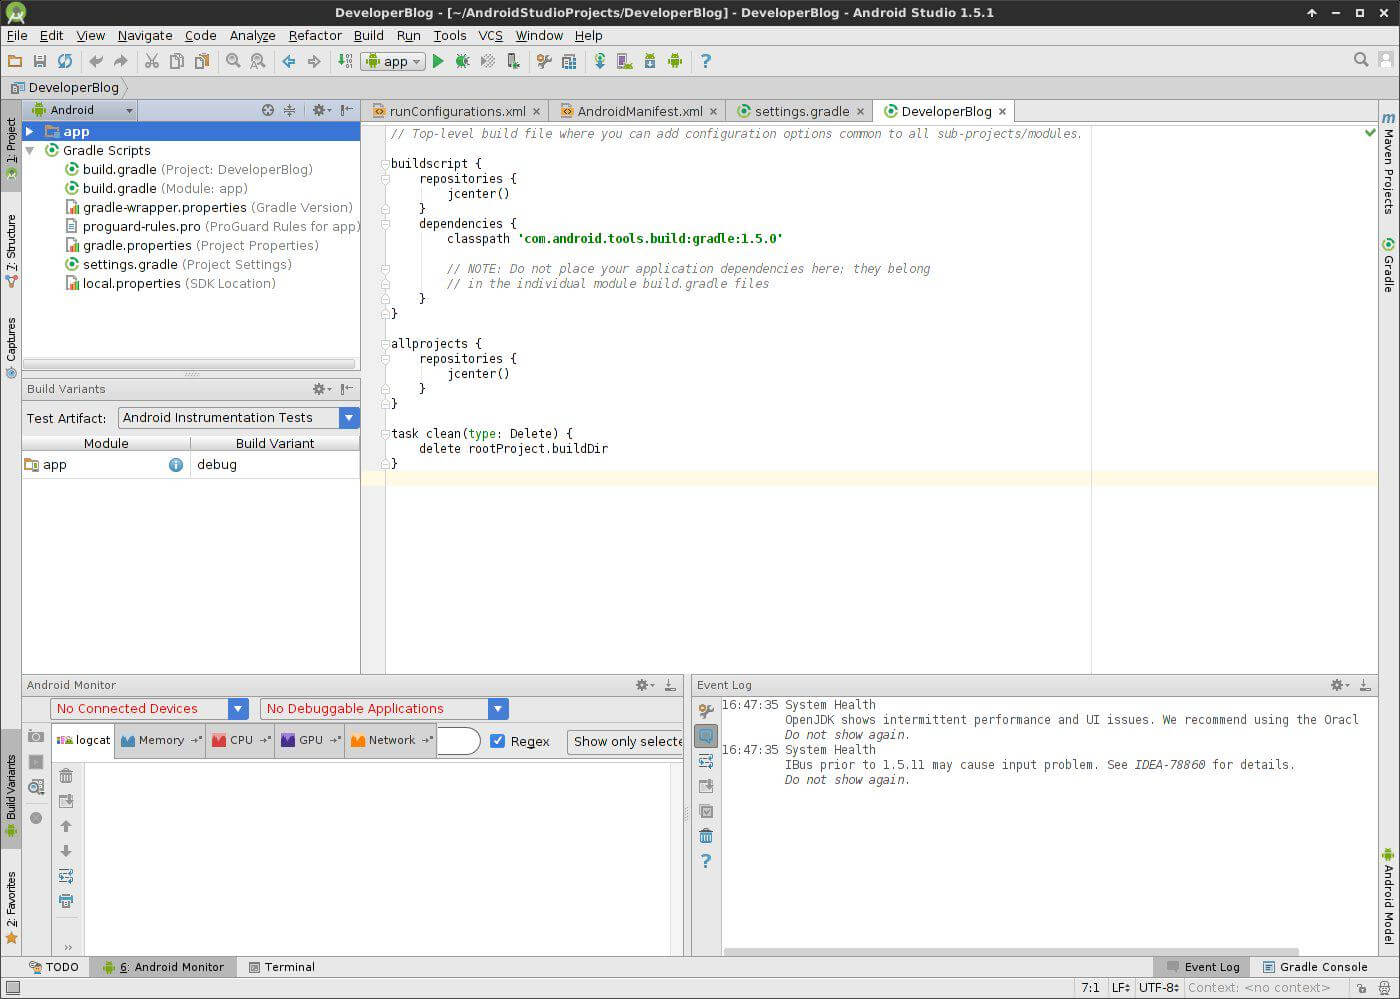 Android Studio Developer Blog App